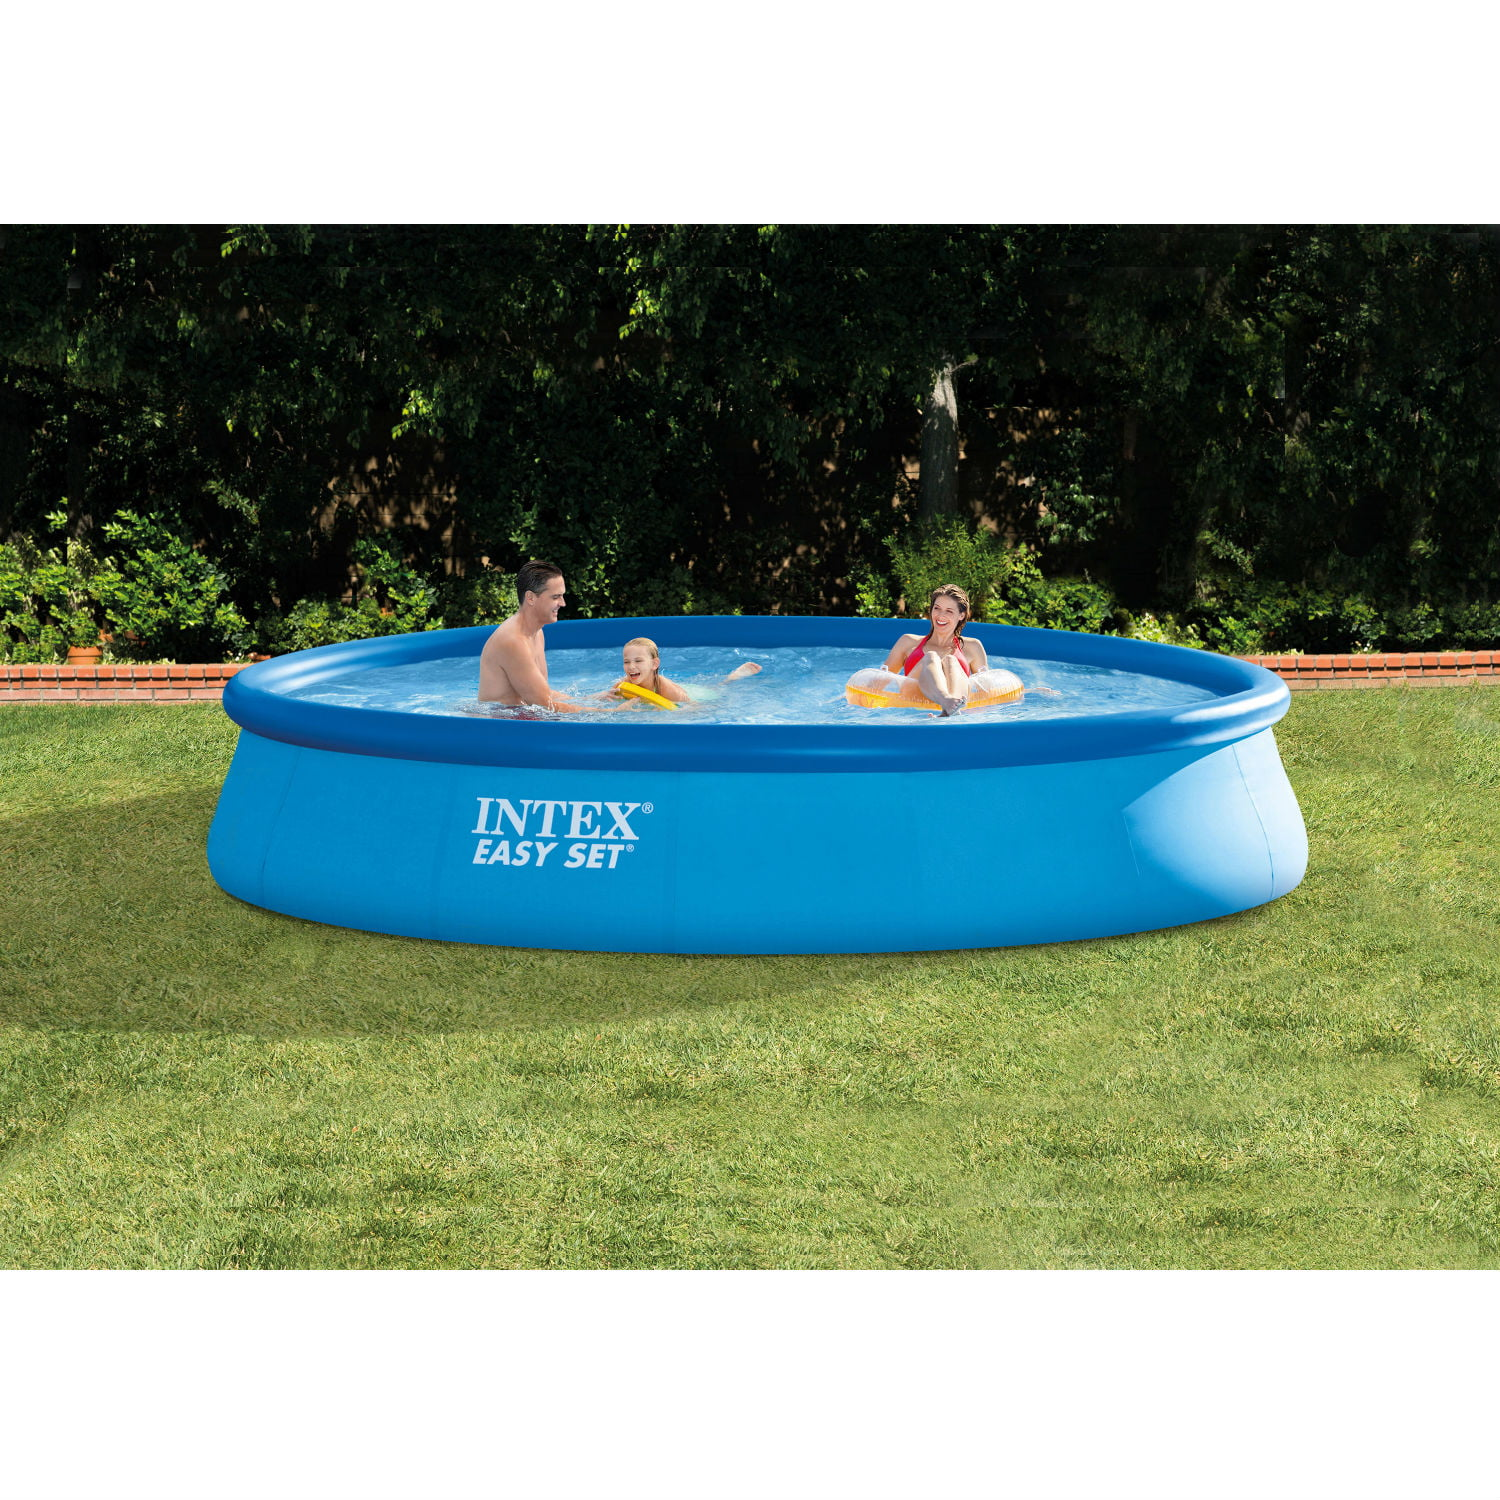 Premium quick above ground swimming pool round easy set up for Club piscine above ground pools prices